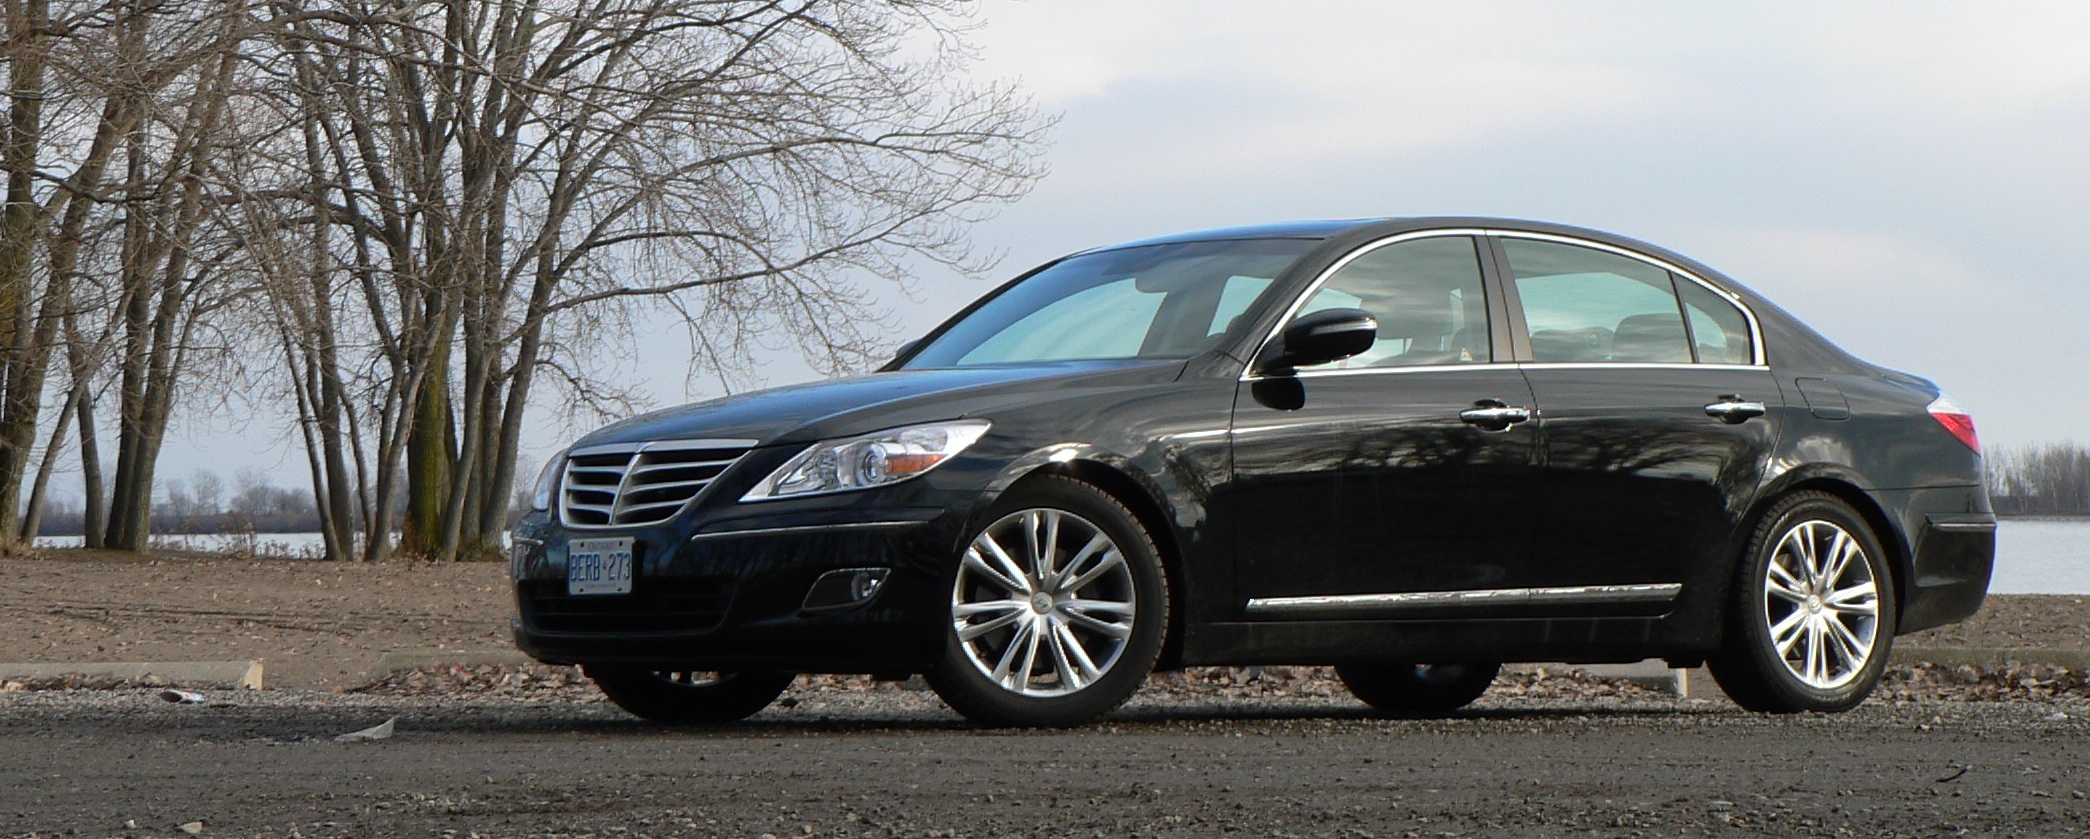 Road Test: 2009 Hyundai Genesis 4.6